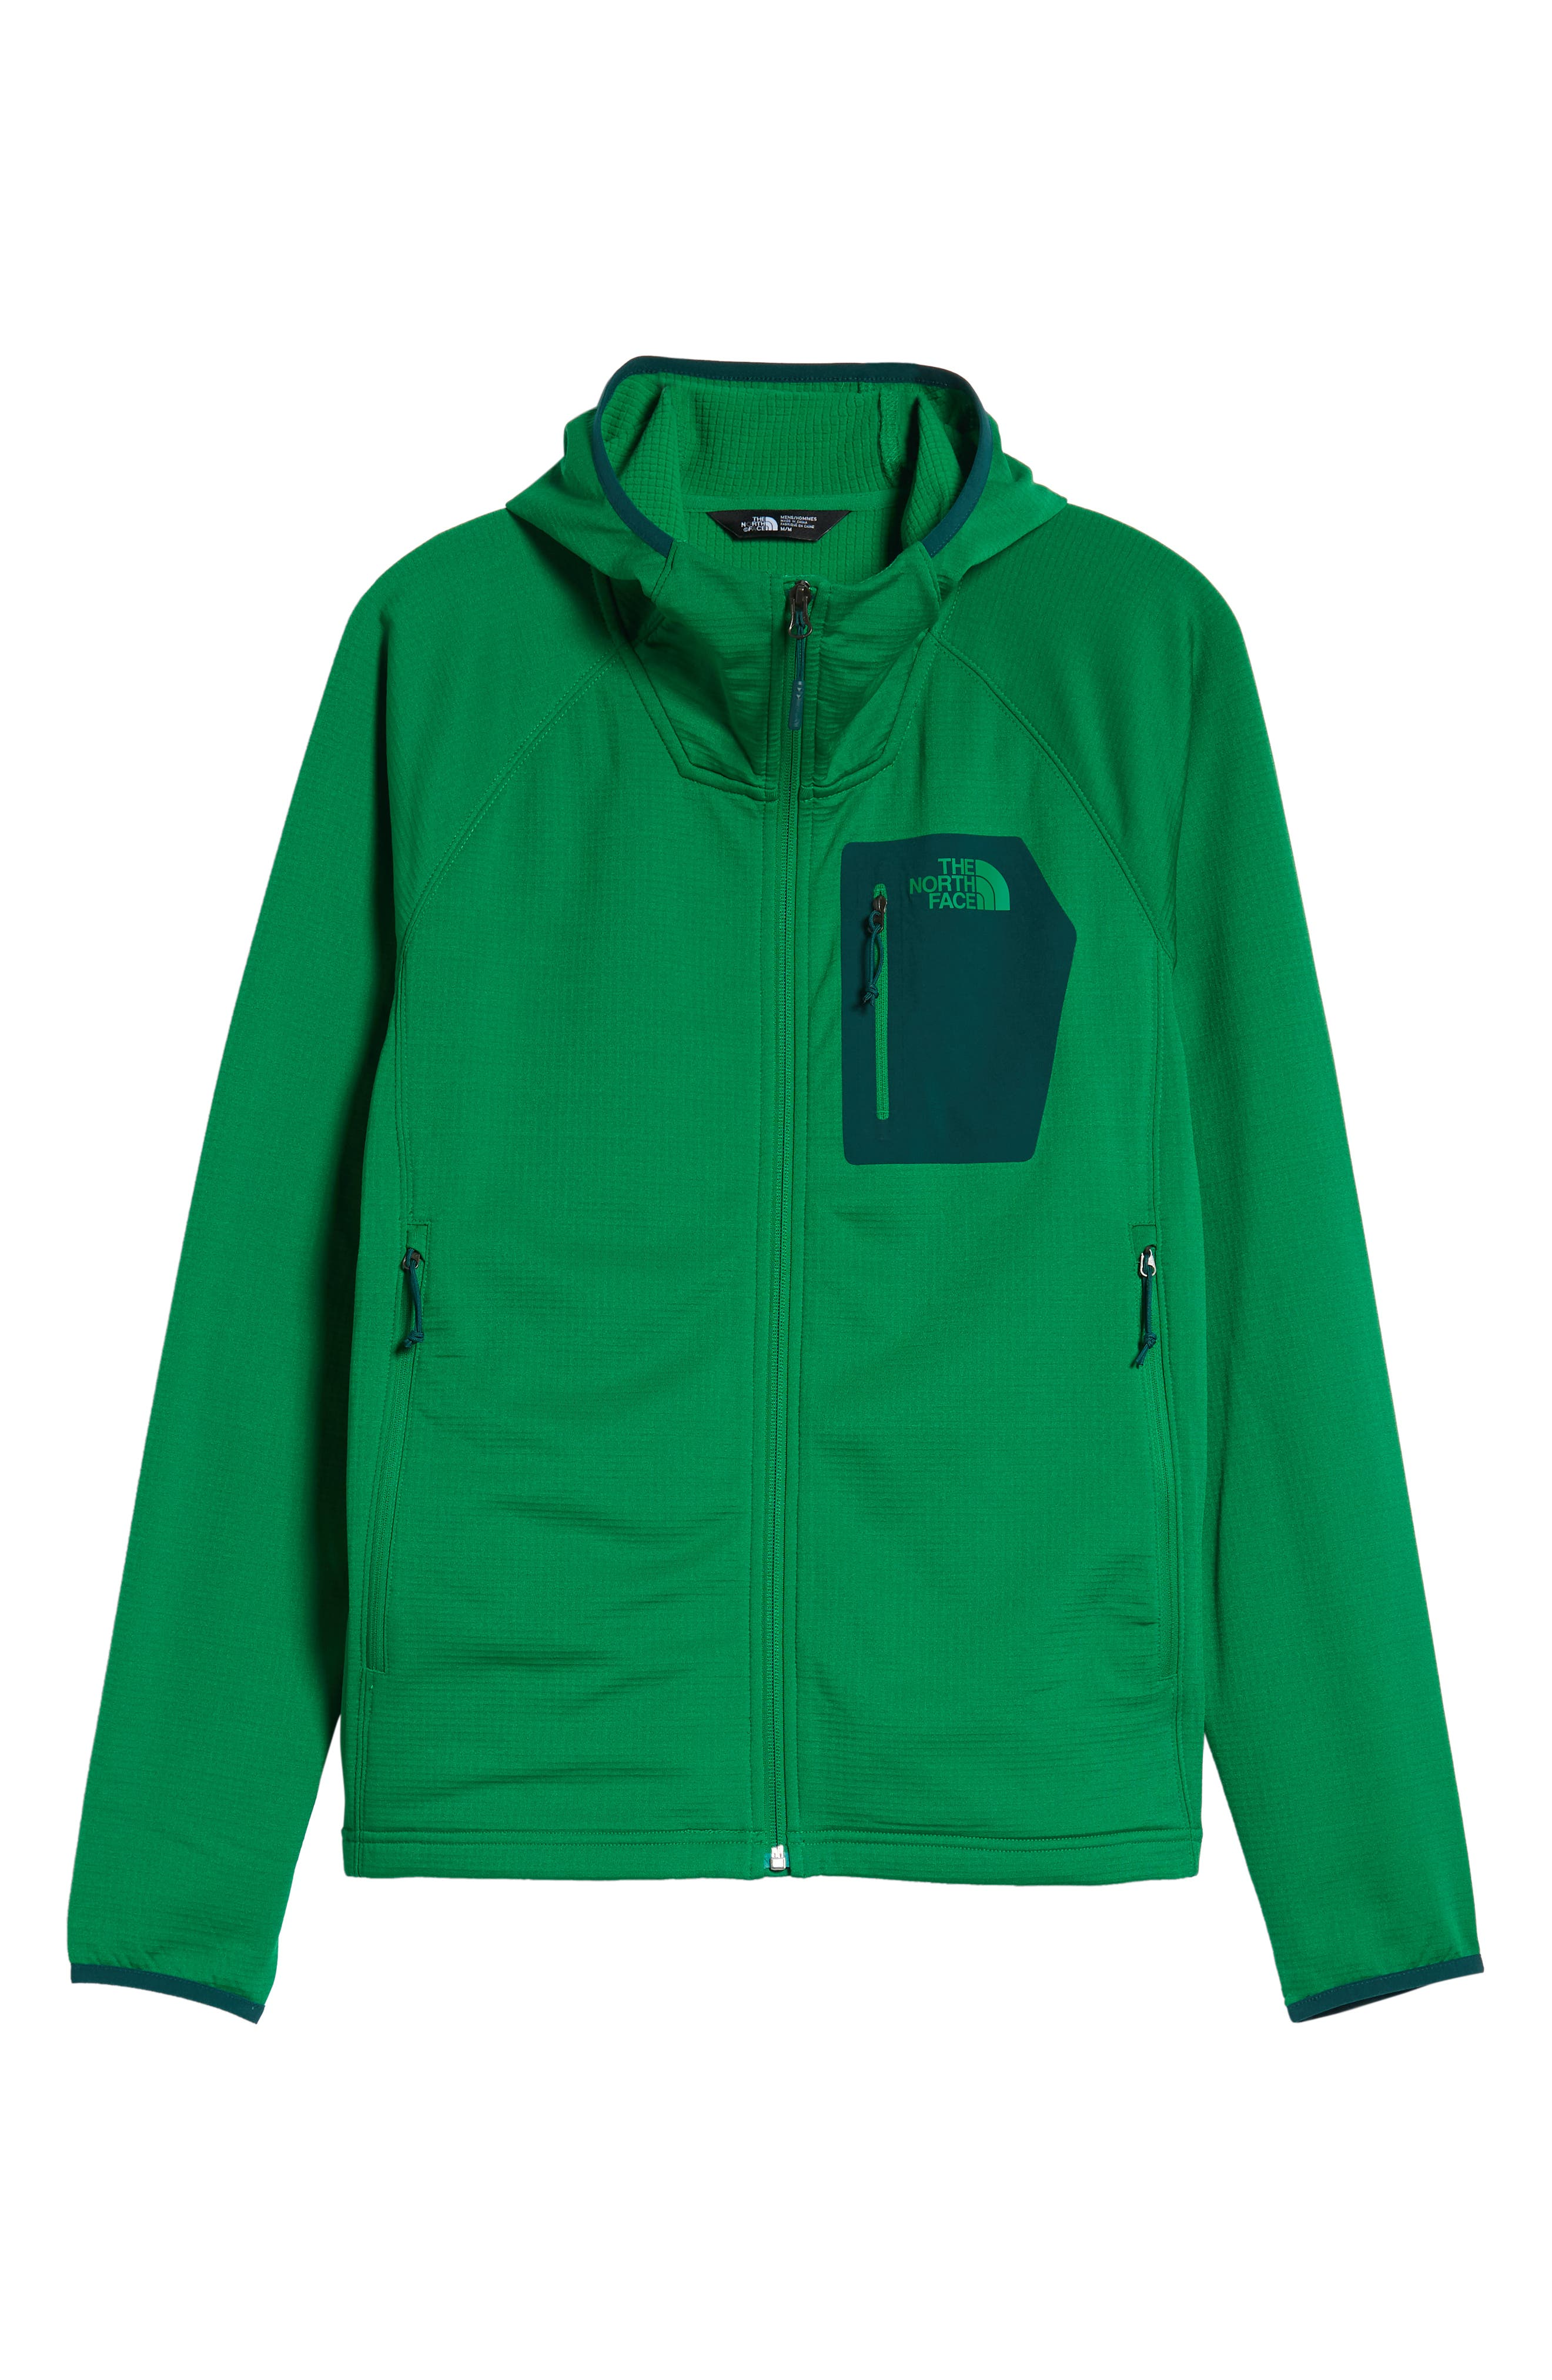 THE NORTH FACE, Borod Zip Fleece Jacket, Alternate thumbnail 6, color, 301